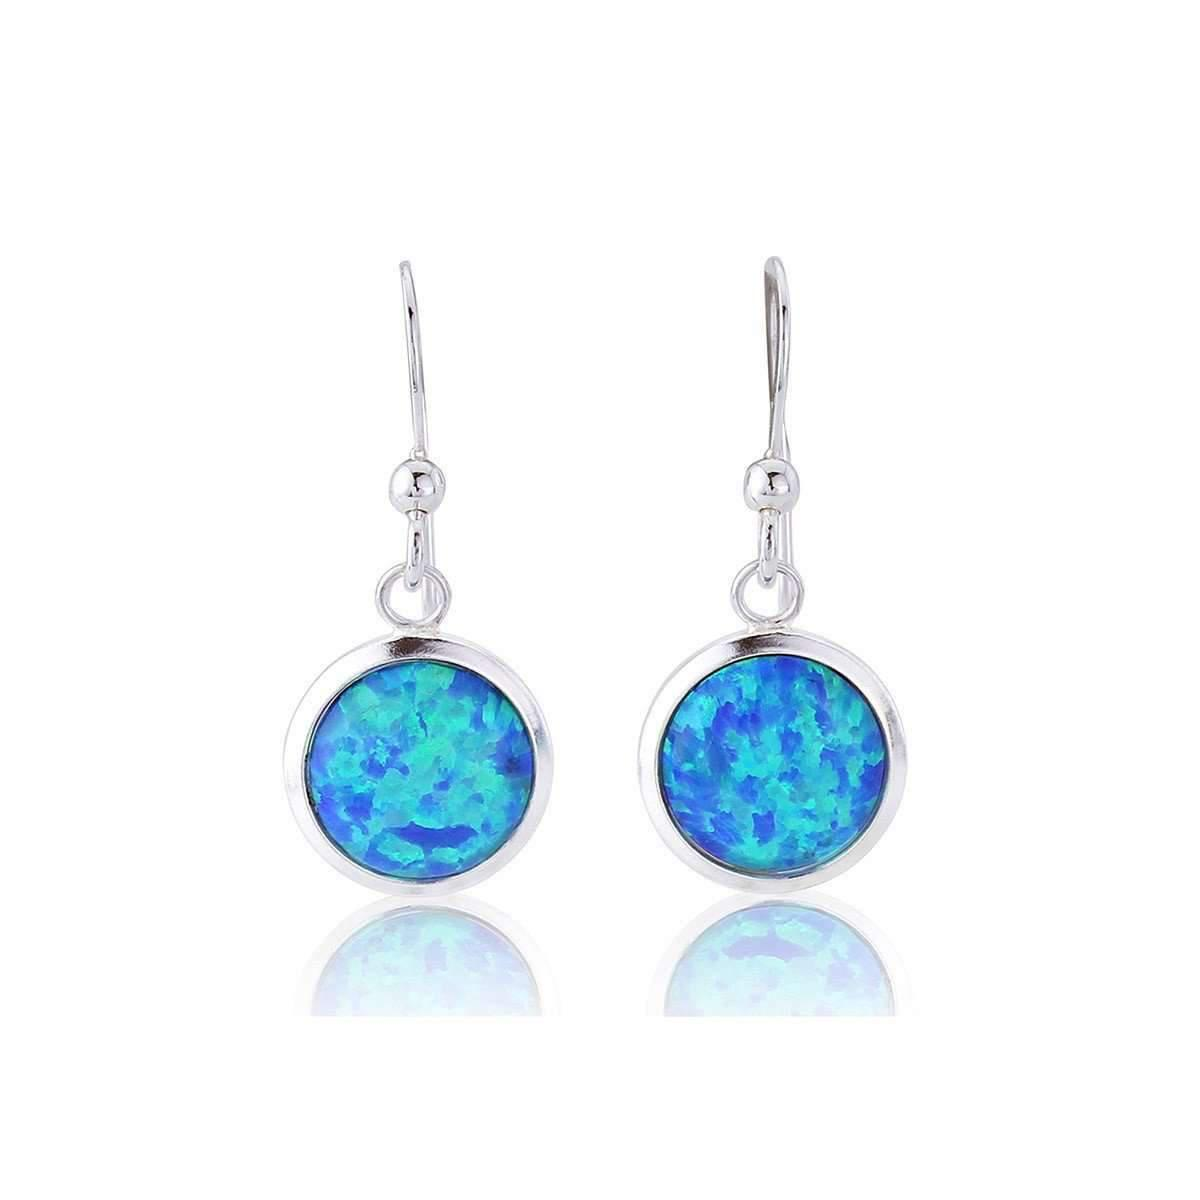 Lavan Blue Opal Teardrop Earrings ZZs6yQn4Cx